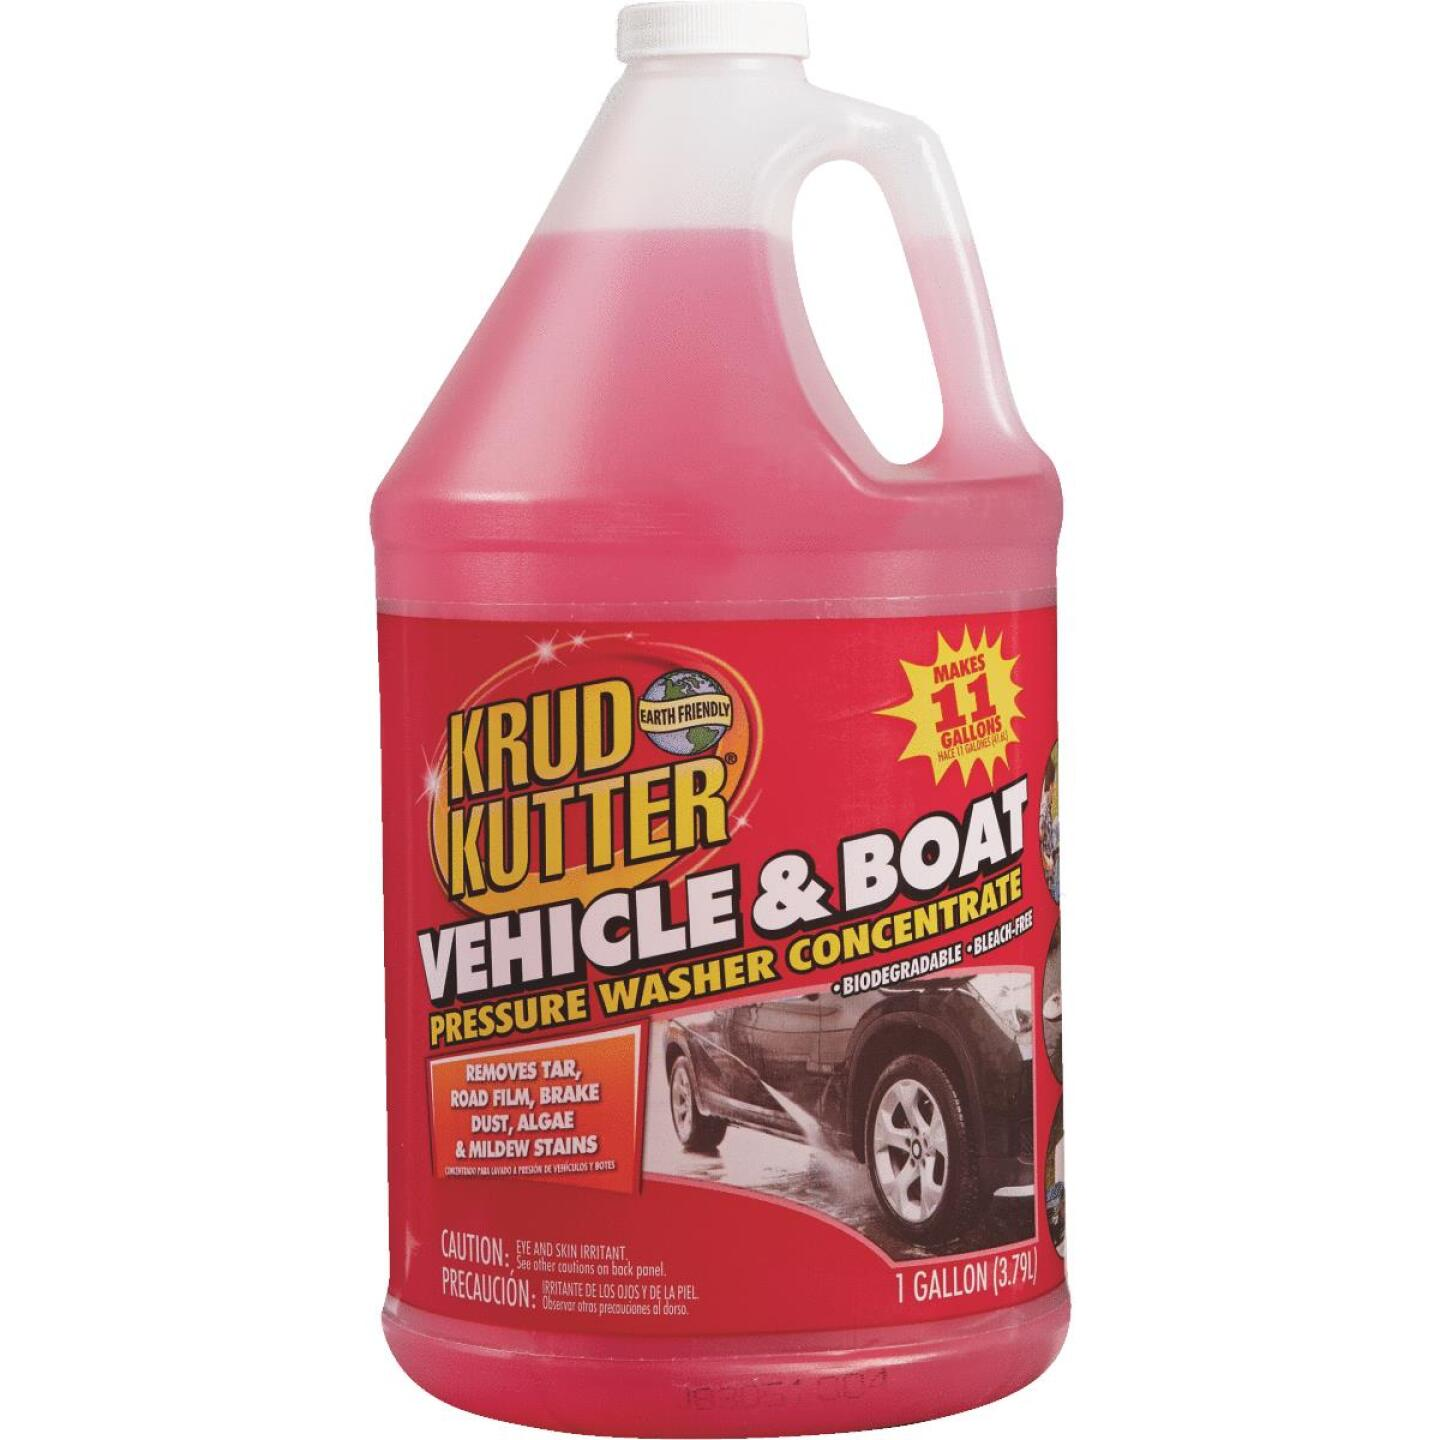 Krud Kutter Vehicle & Boat Pressure Washer Concentrate Cleaner Image 1